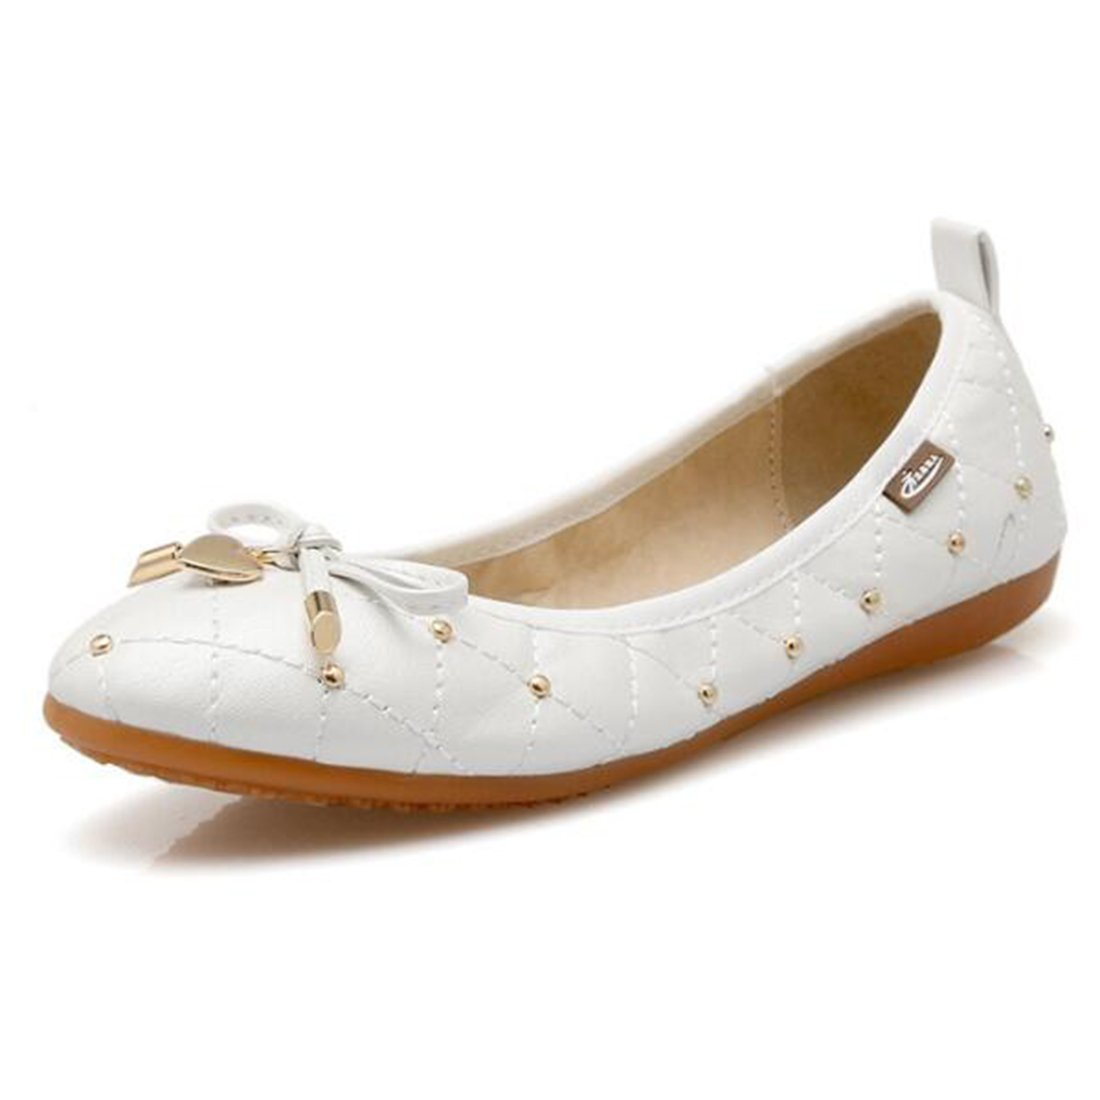 COVOYYAR Women's Bow Metal Decor Low Top Ballet Flats Slip On Casual Shoes Loafers